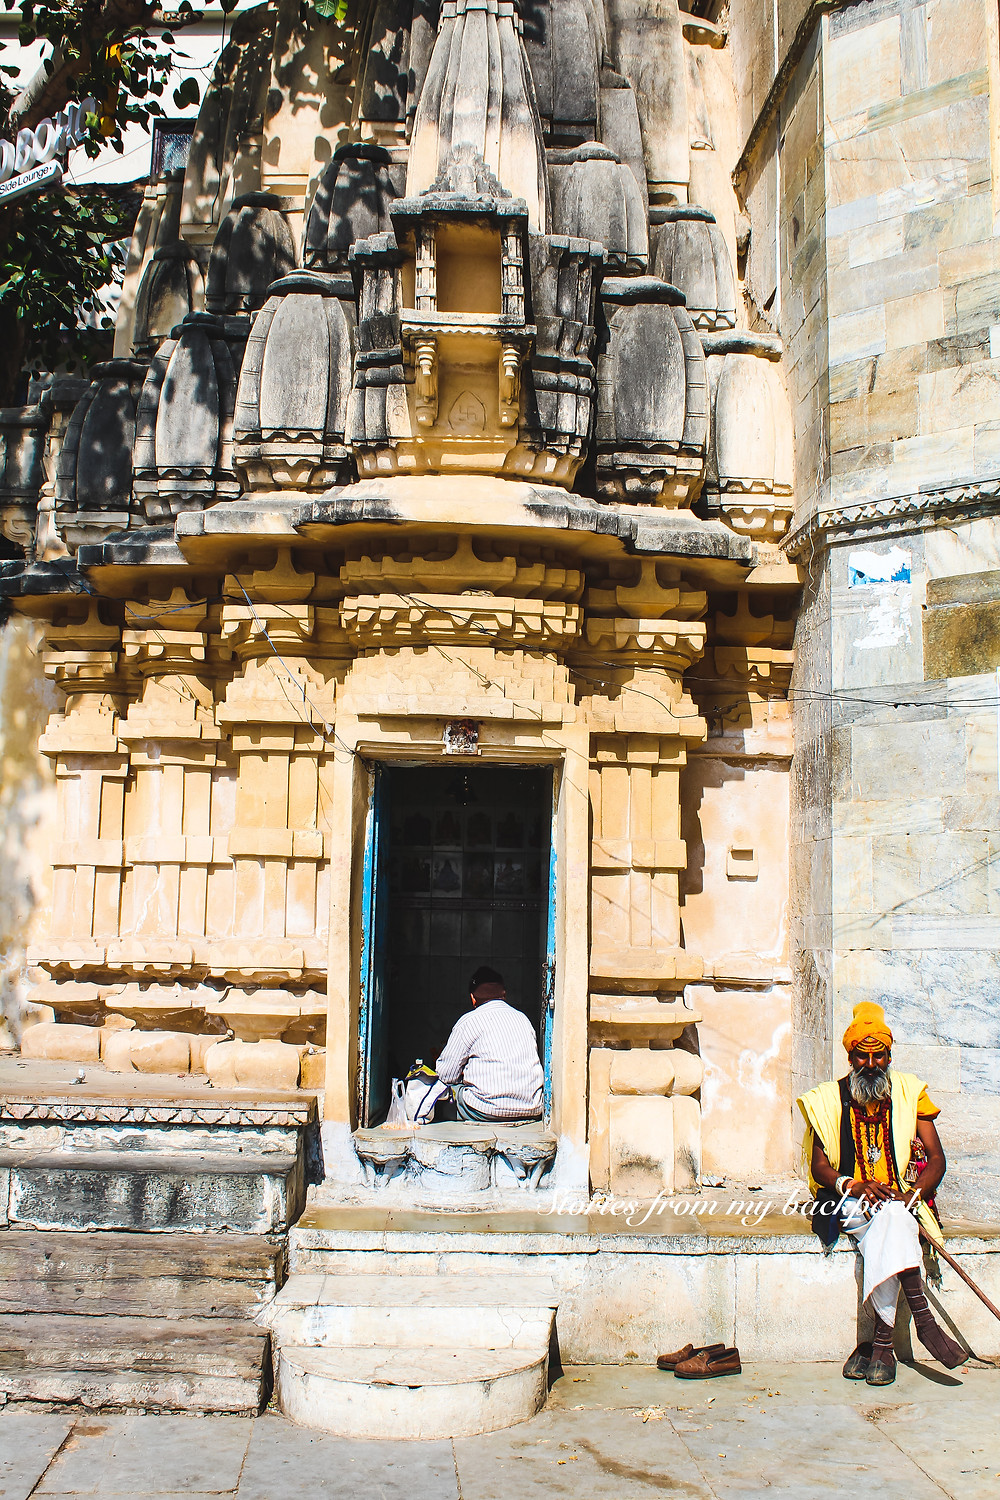 temples in Udaipur, ambrai ghat, Gangaur Ghat, lake Pichola, Udaipur must do things